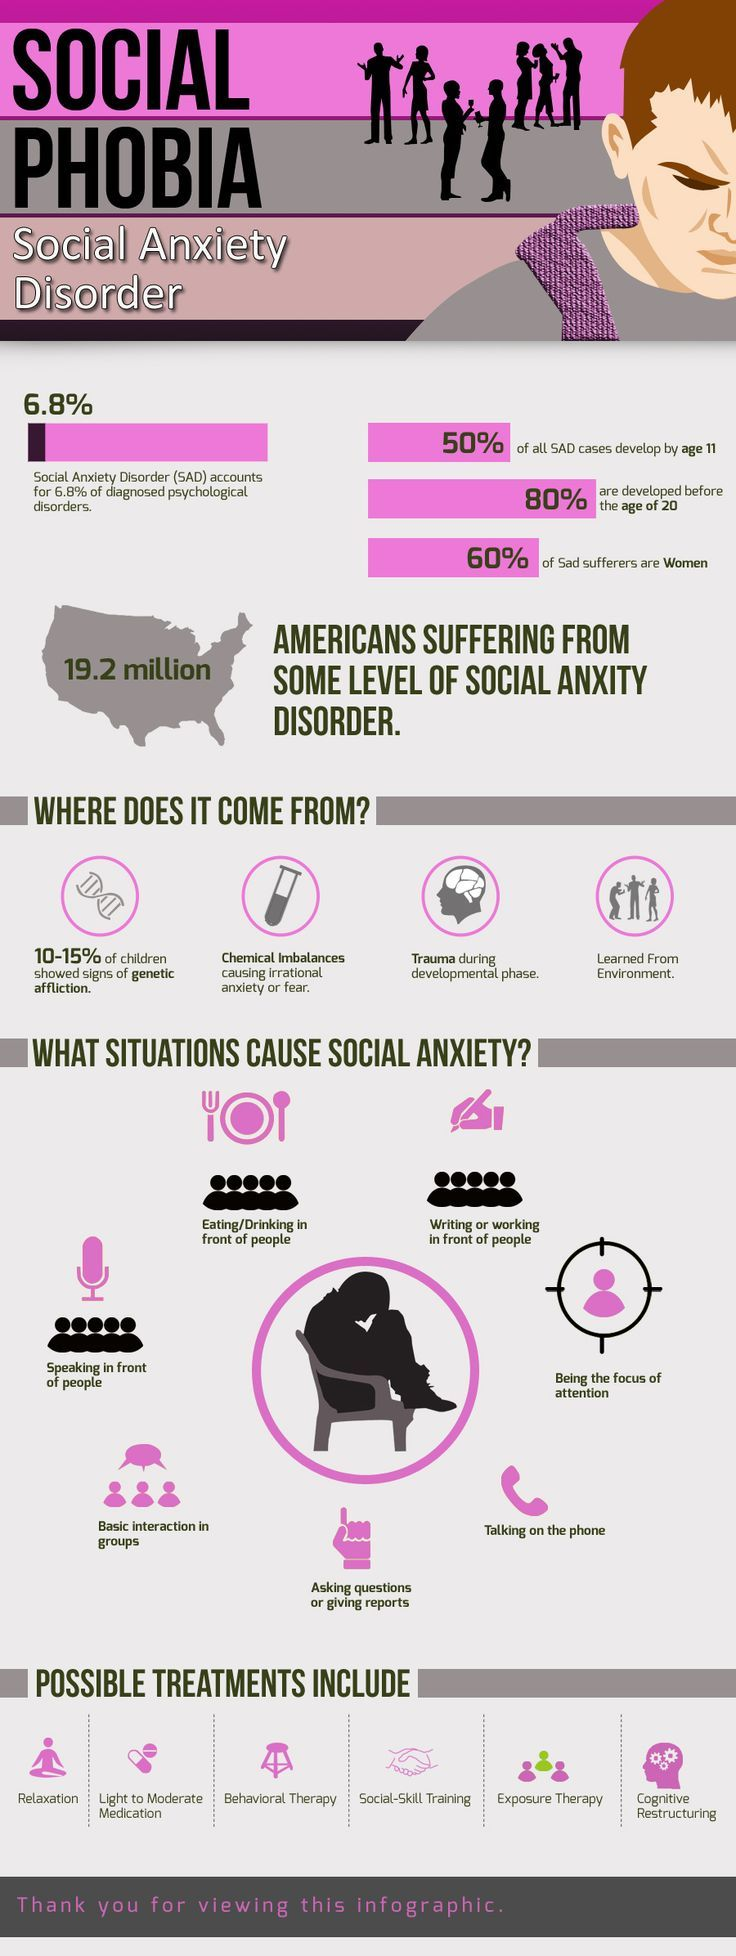 Facts About Social Anxiety Disorder Pictures Photos And Images For Facebook Tumblr Pinterest